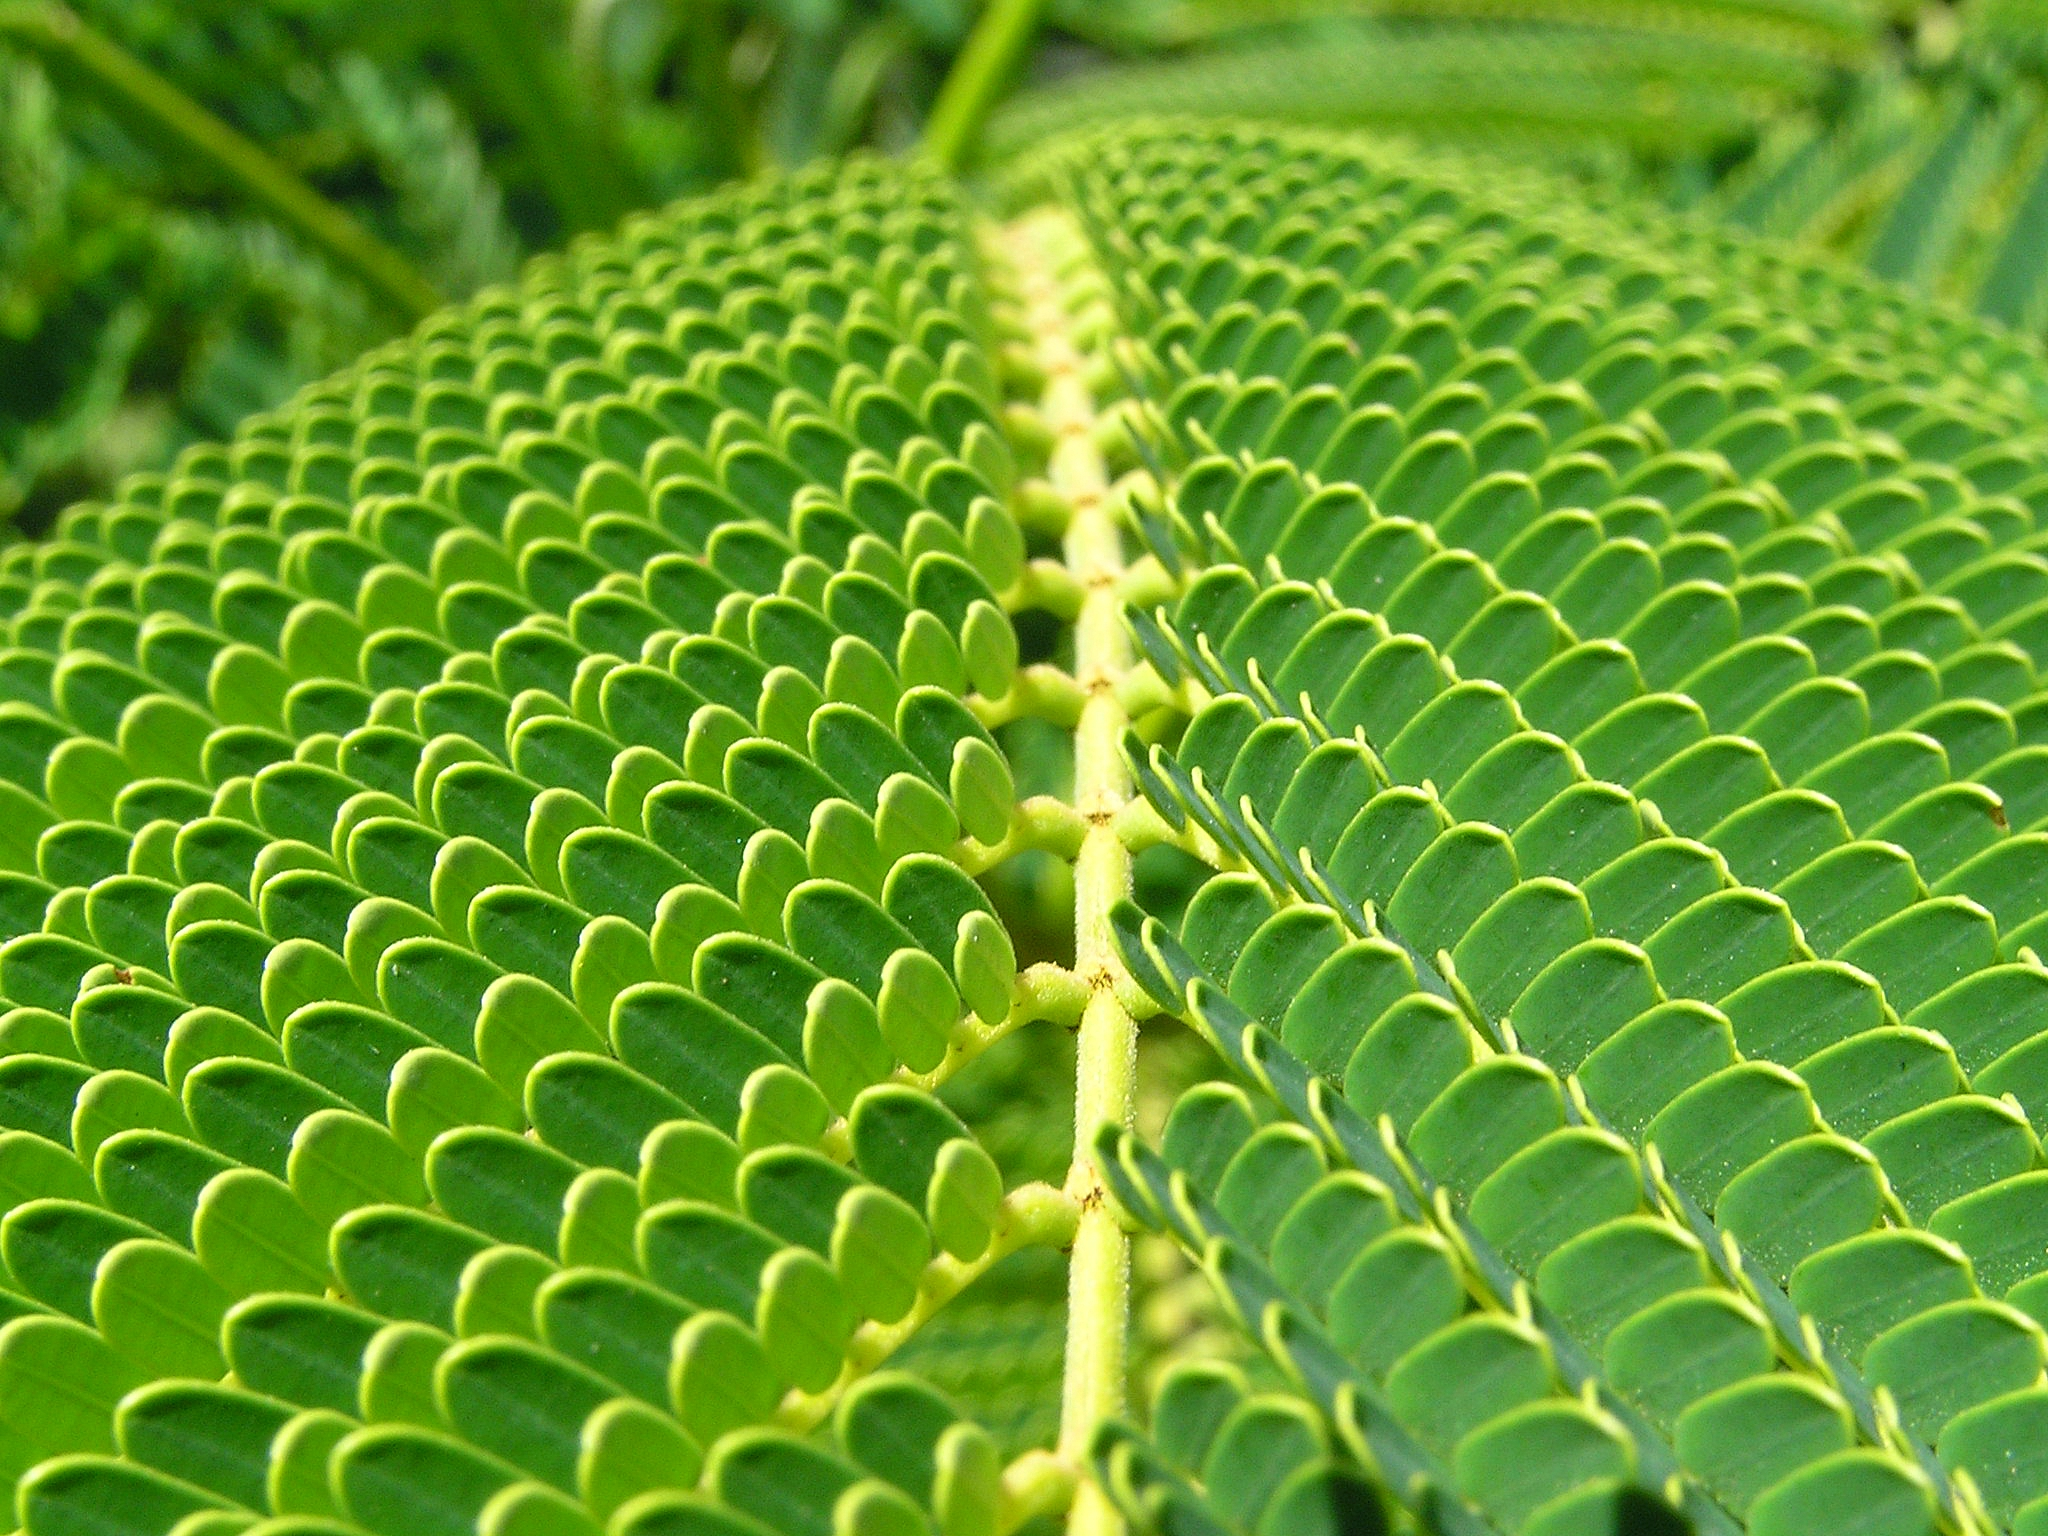 File:Unidentified fern macro.jpg